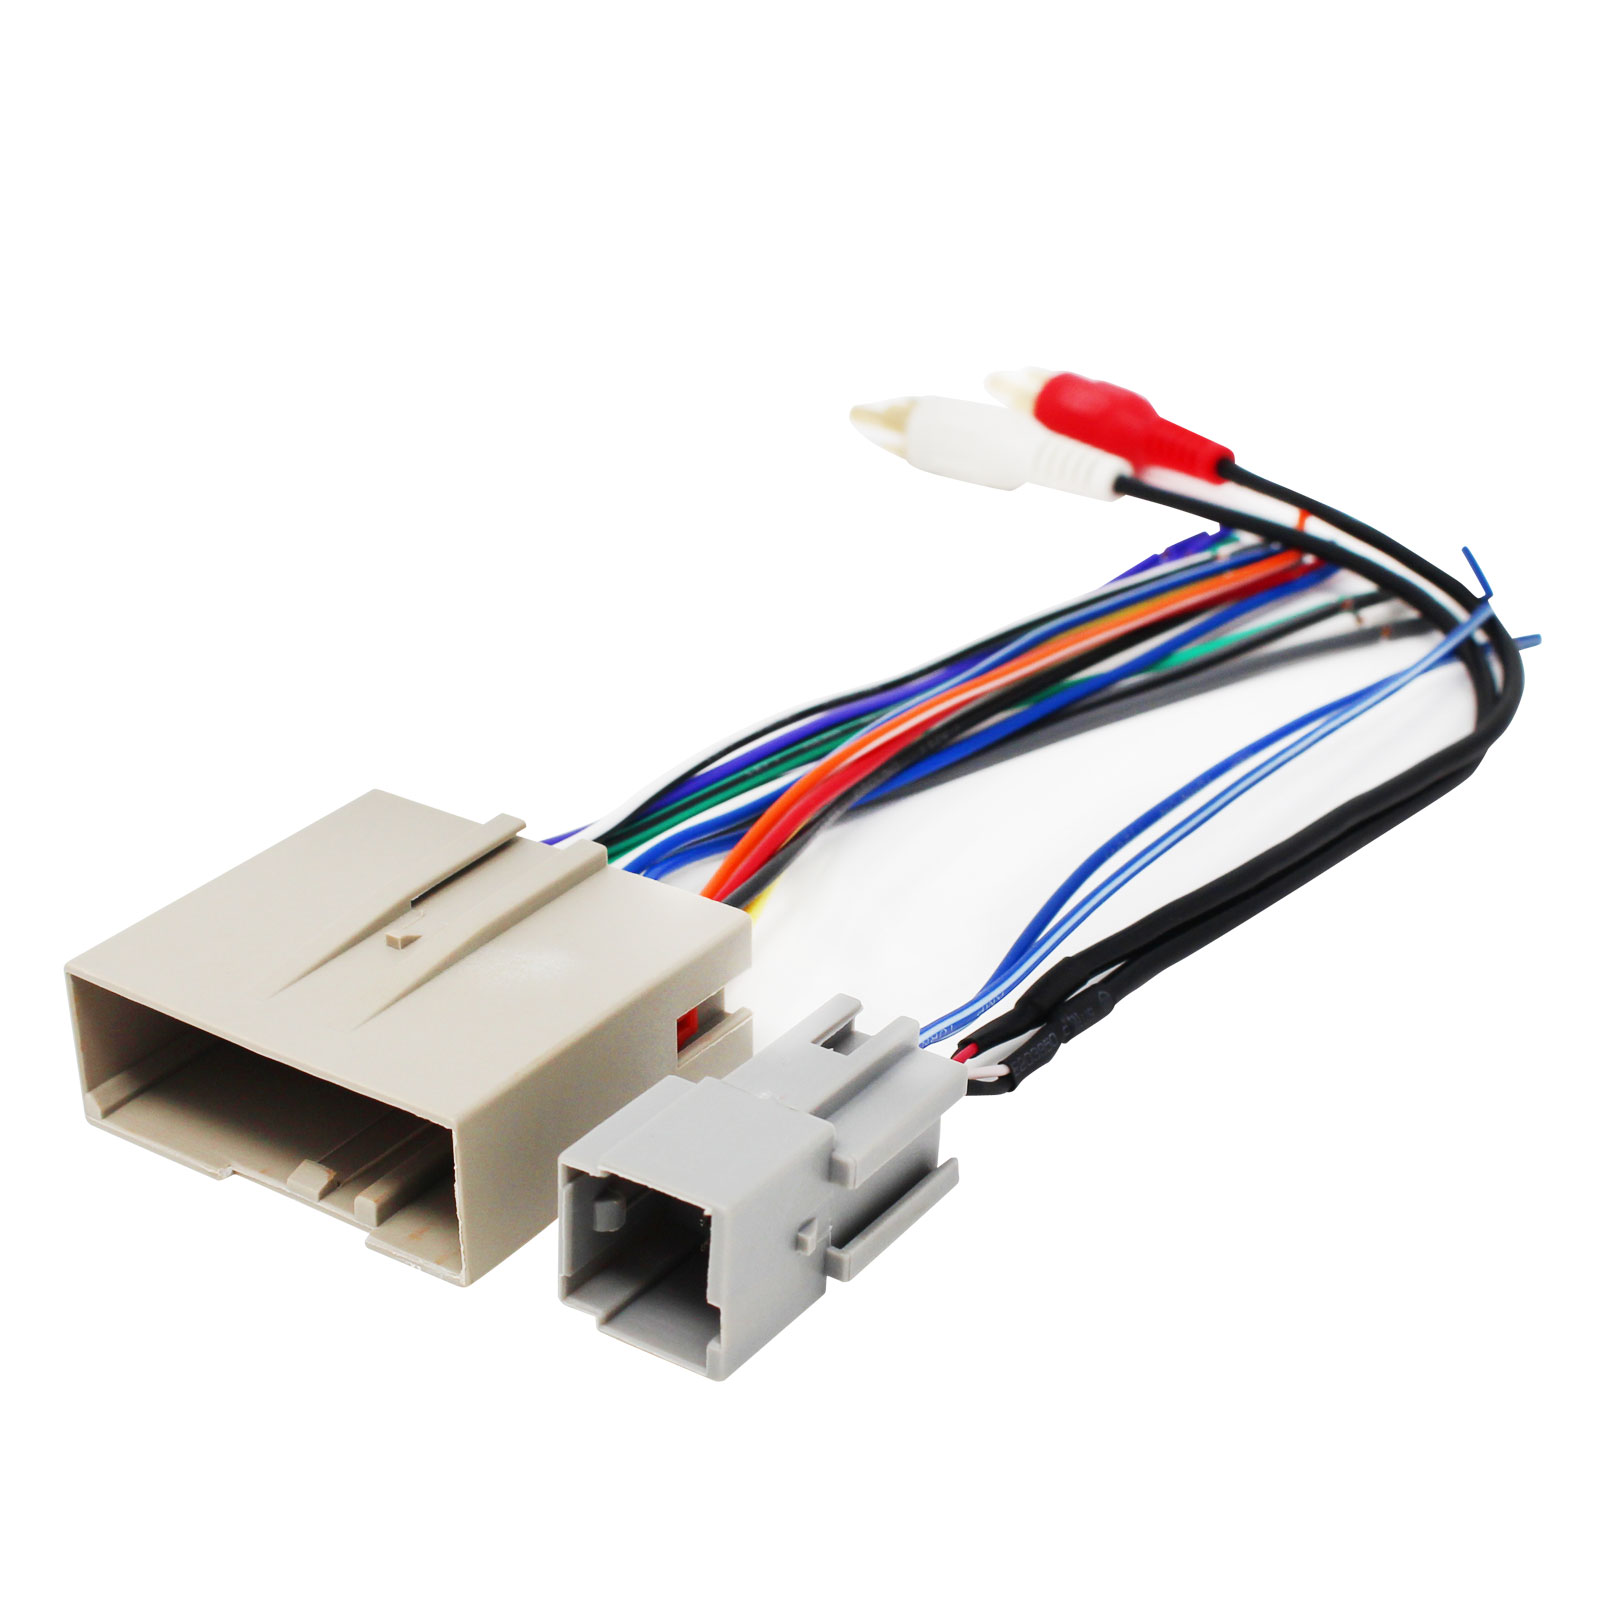 Ford Aftermarket Stereo Wiring Harness Adapters Electrical Car Adapter To Jvc Detailed Schematic Diagrams